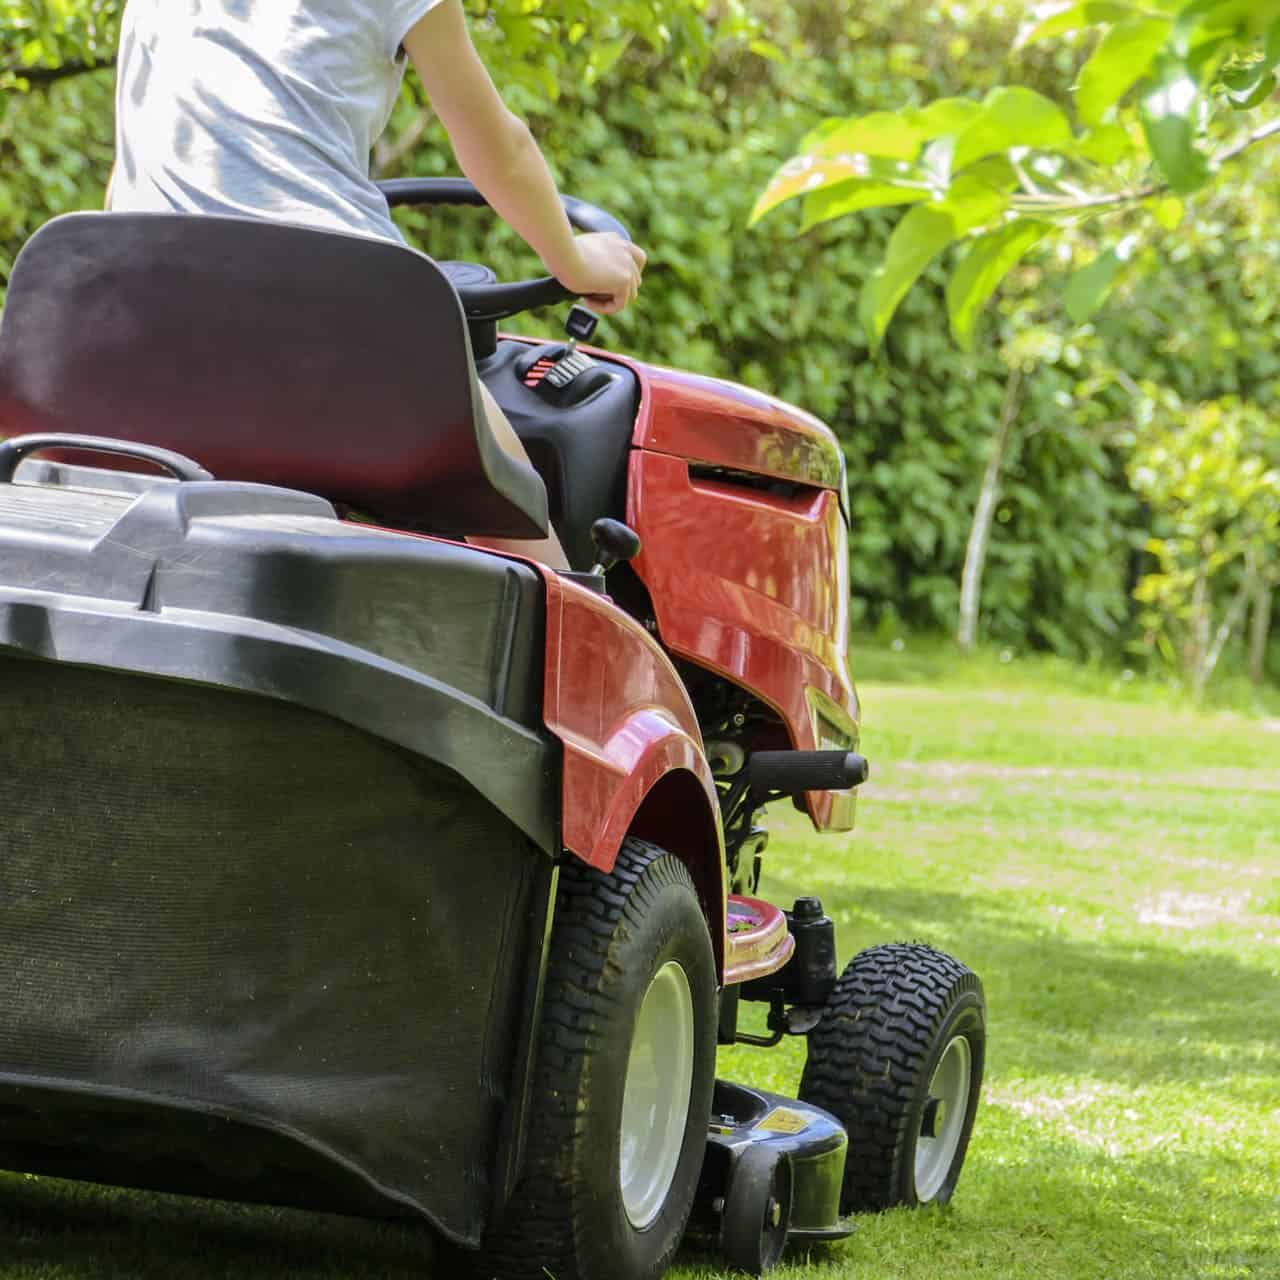 mowing-the-grass-1438159_1920 (1)